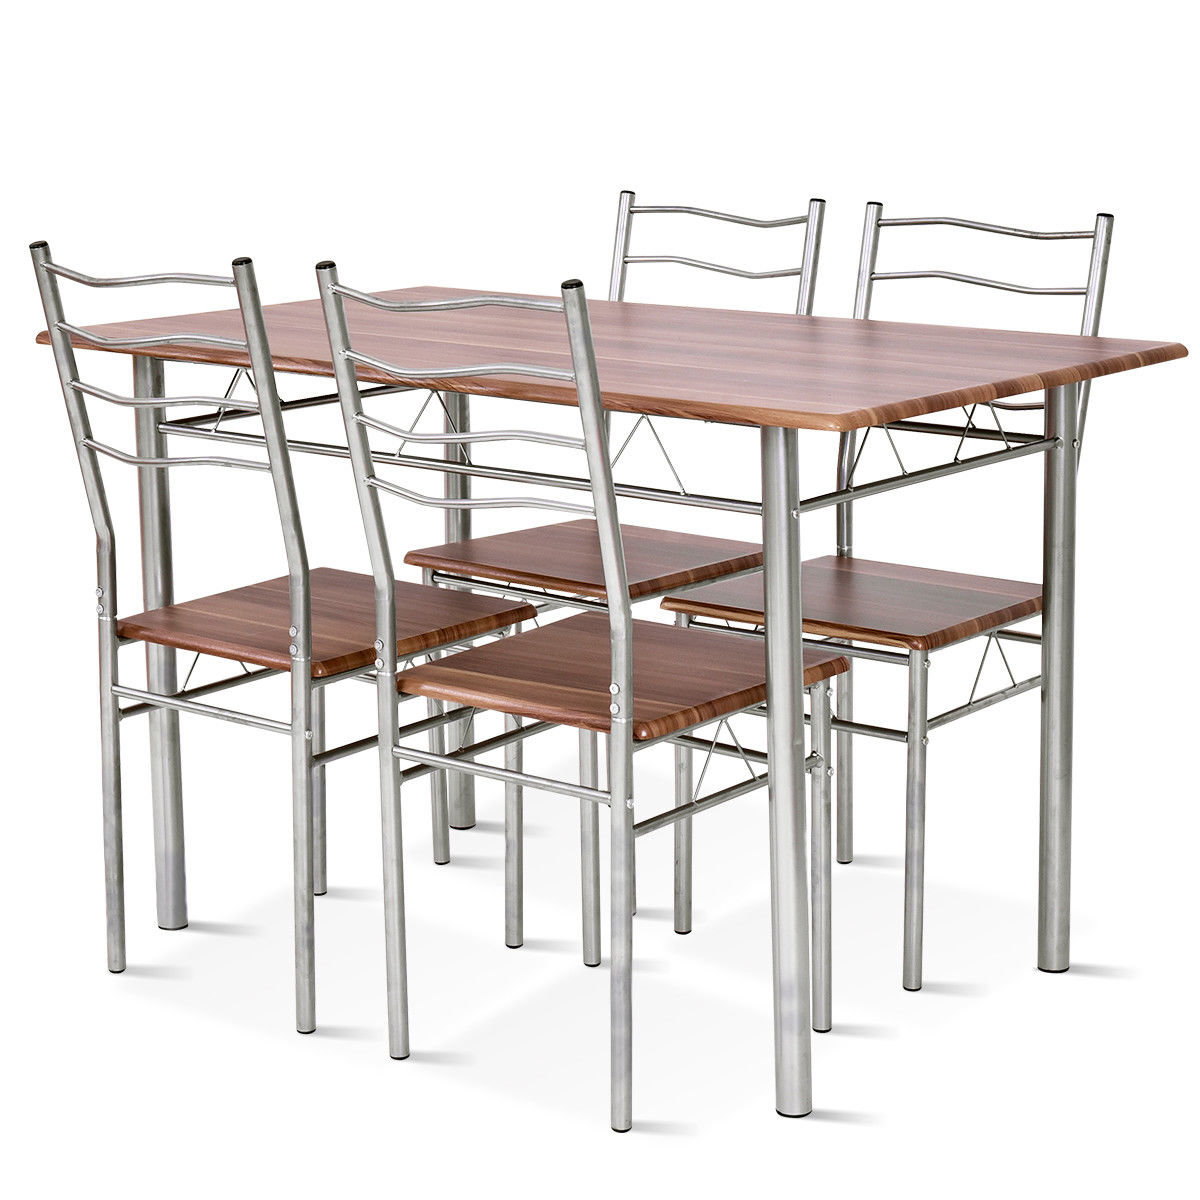 Casiano 5 Piece Dining Set In Current Middleport 5 Piece Dining Sets (Photo 11 of 20)